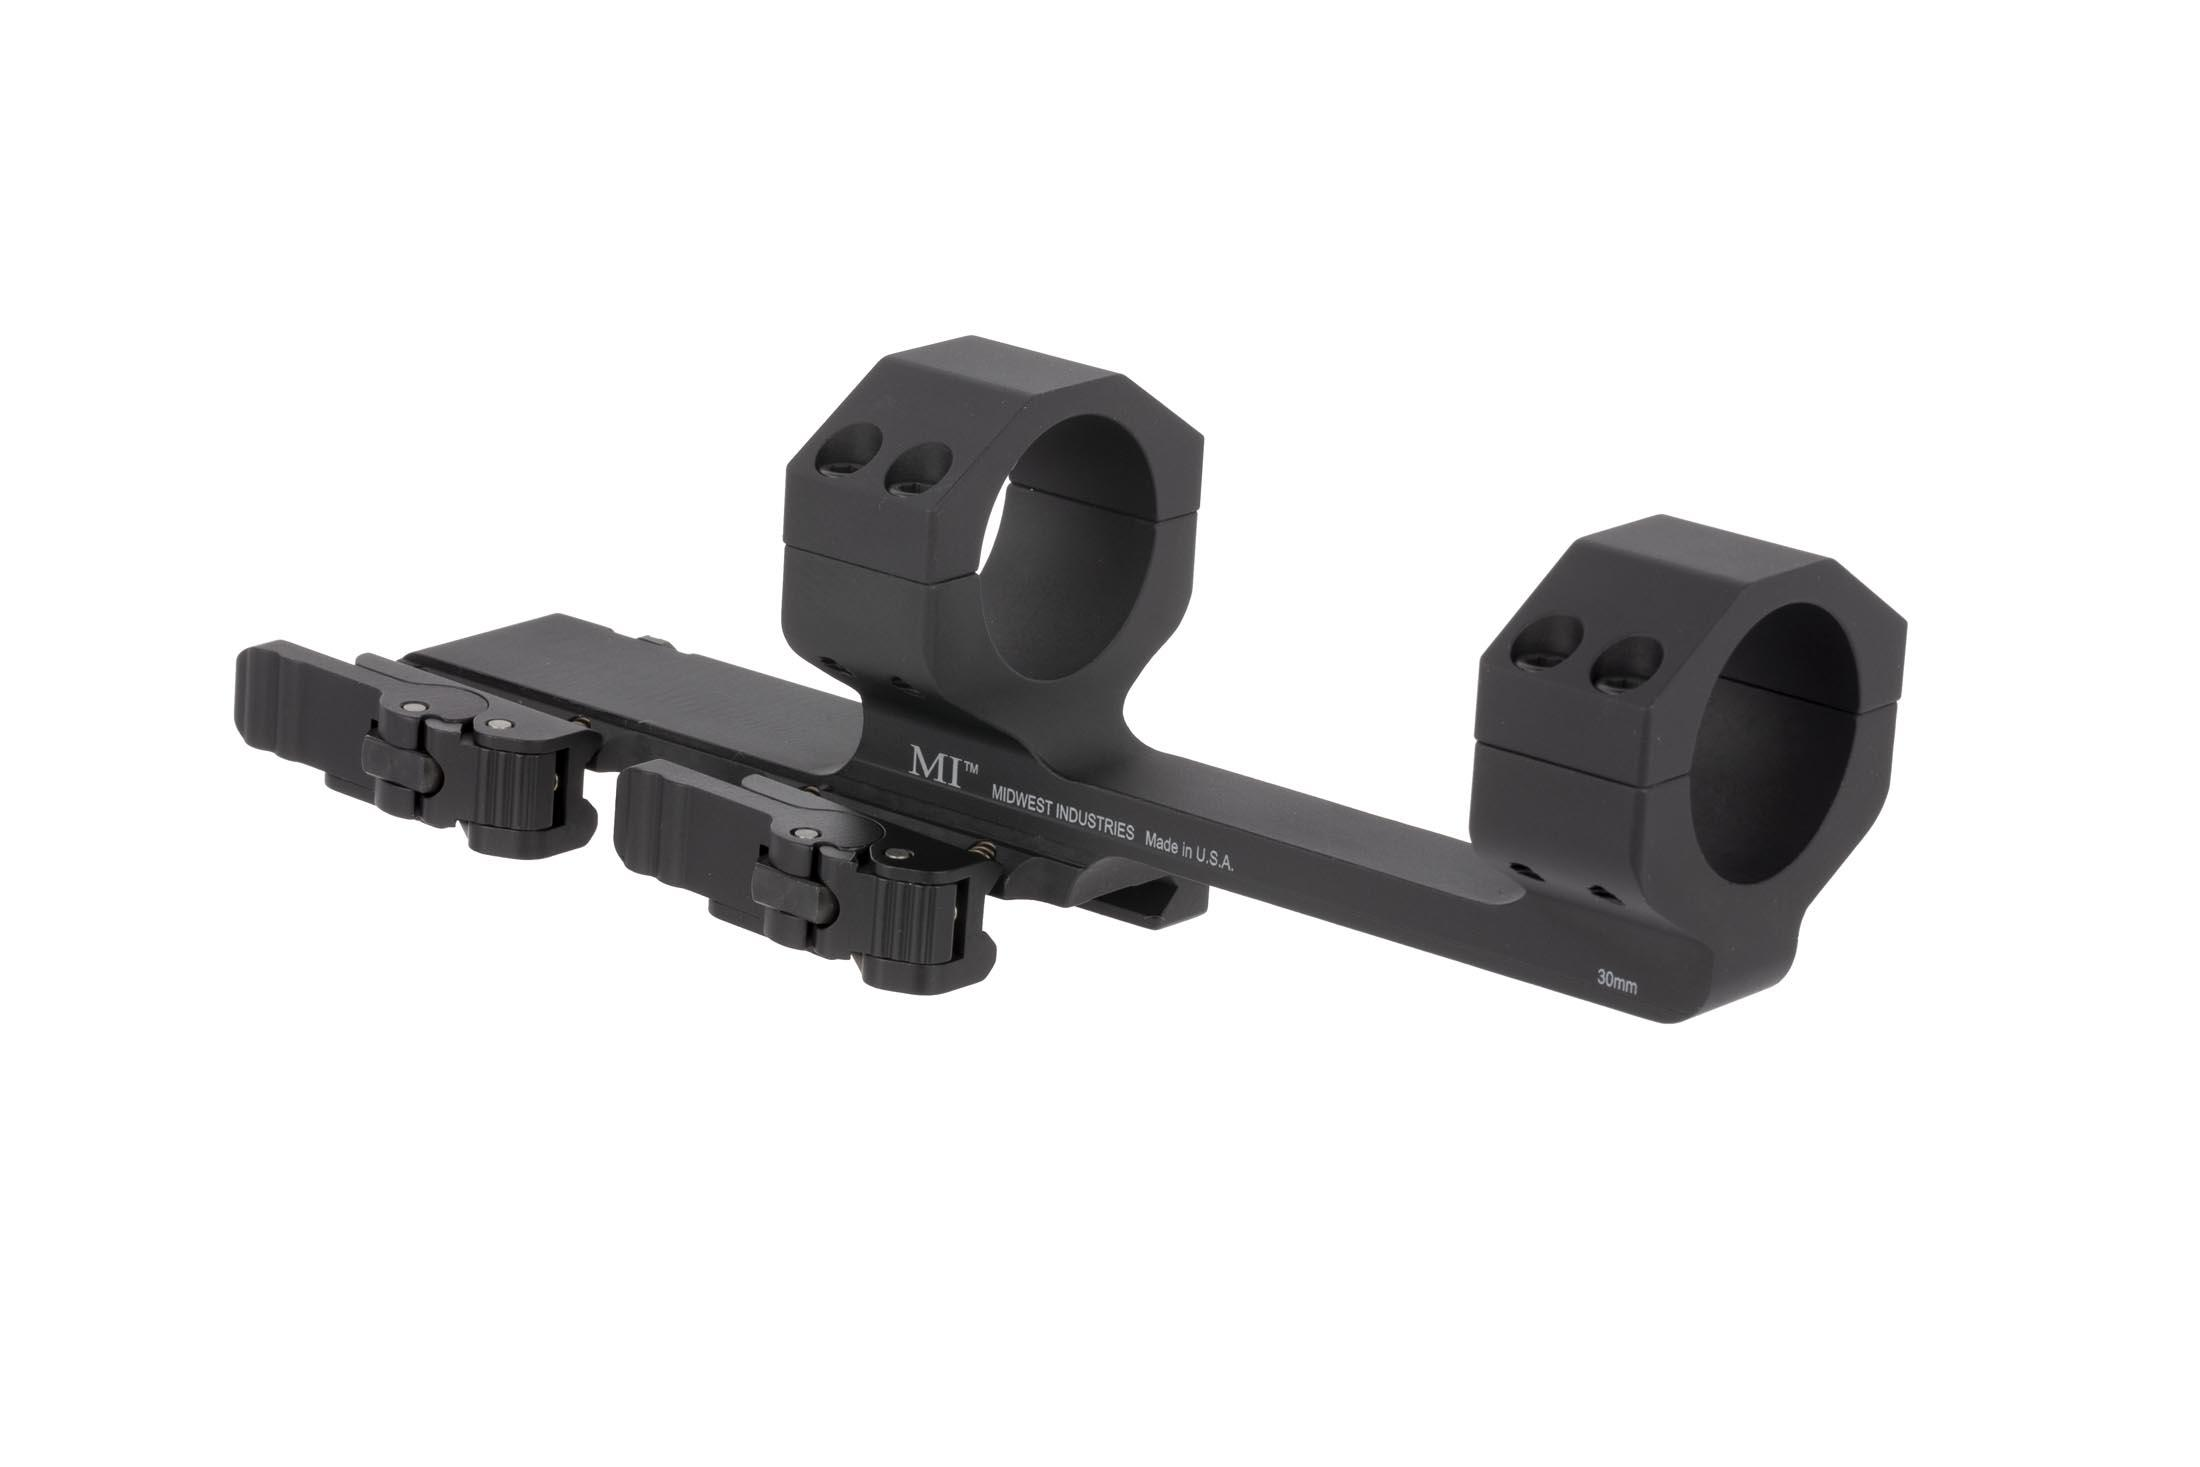 The Midwest Industries quick detach AR15 scope mount is compatible with optics with up to a 56mm objective lens